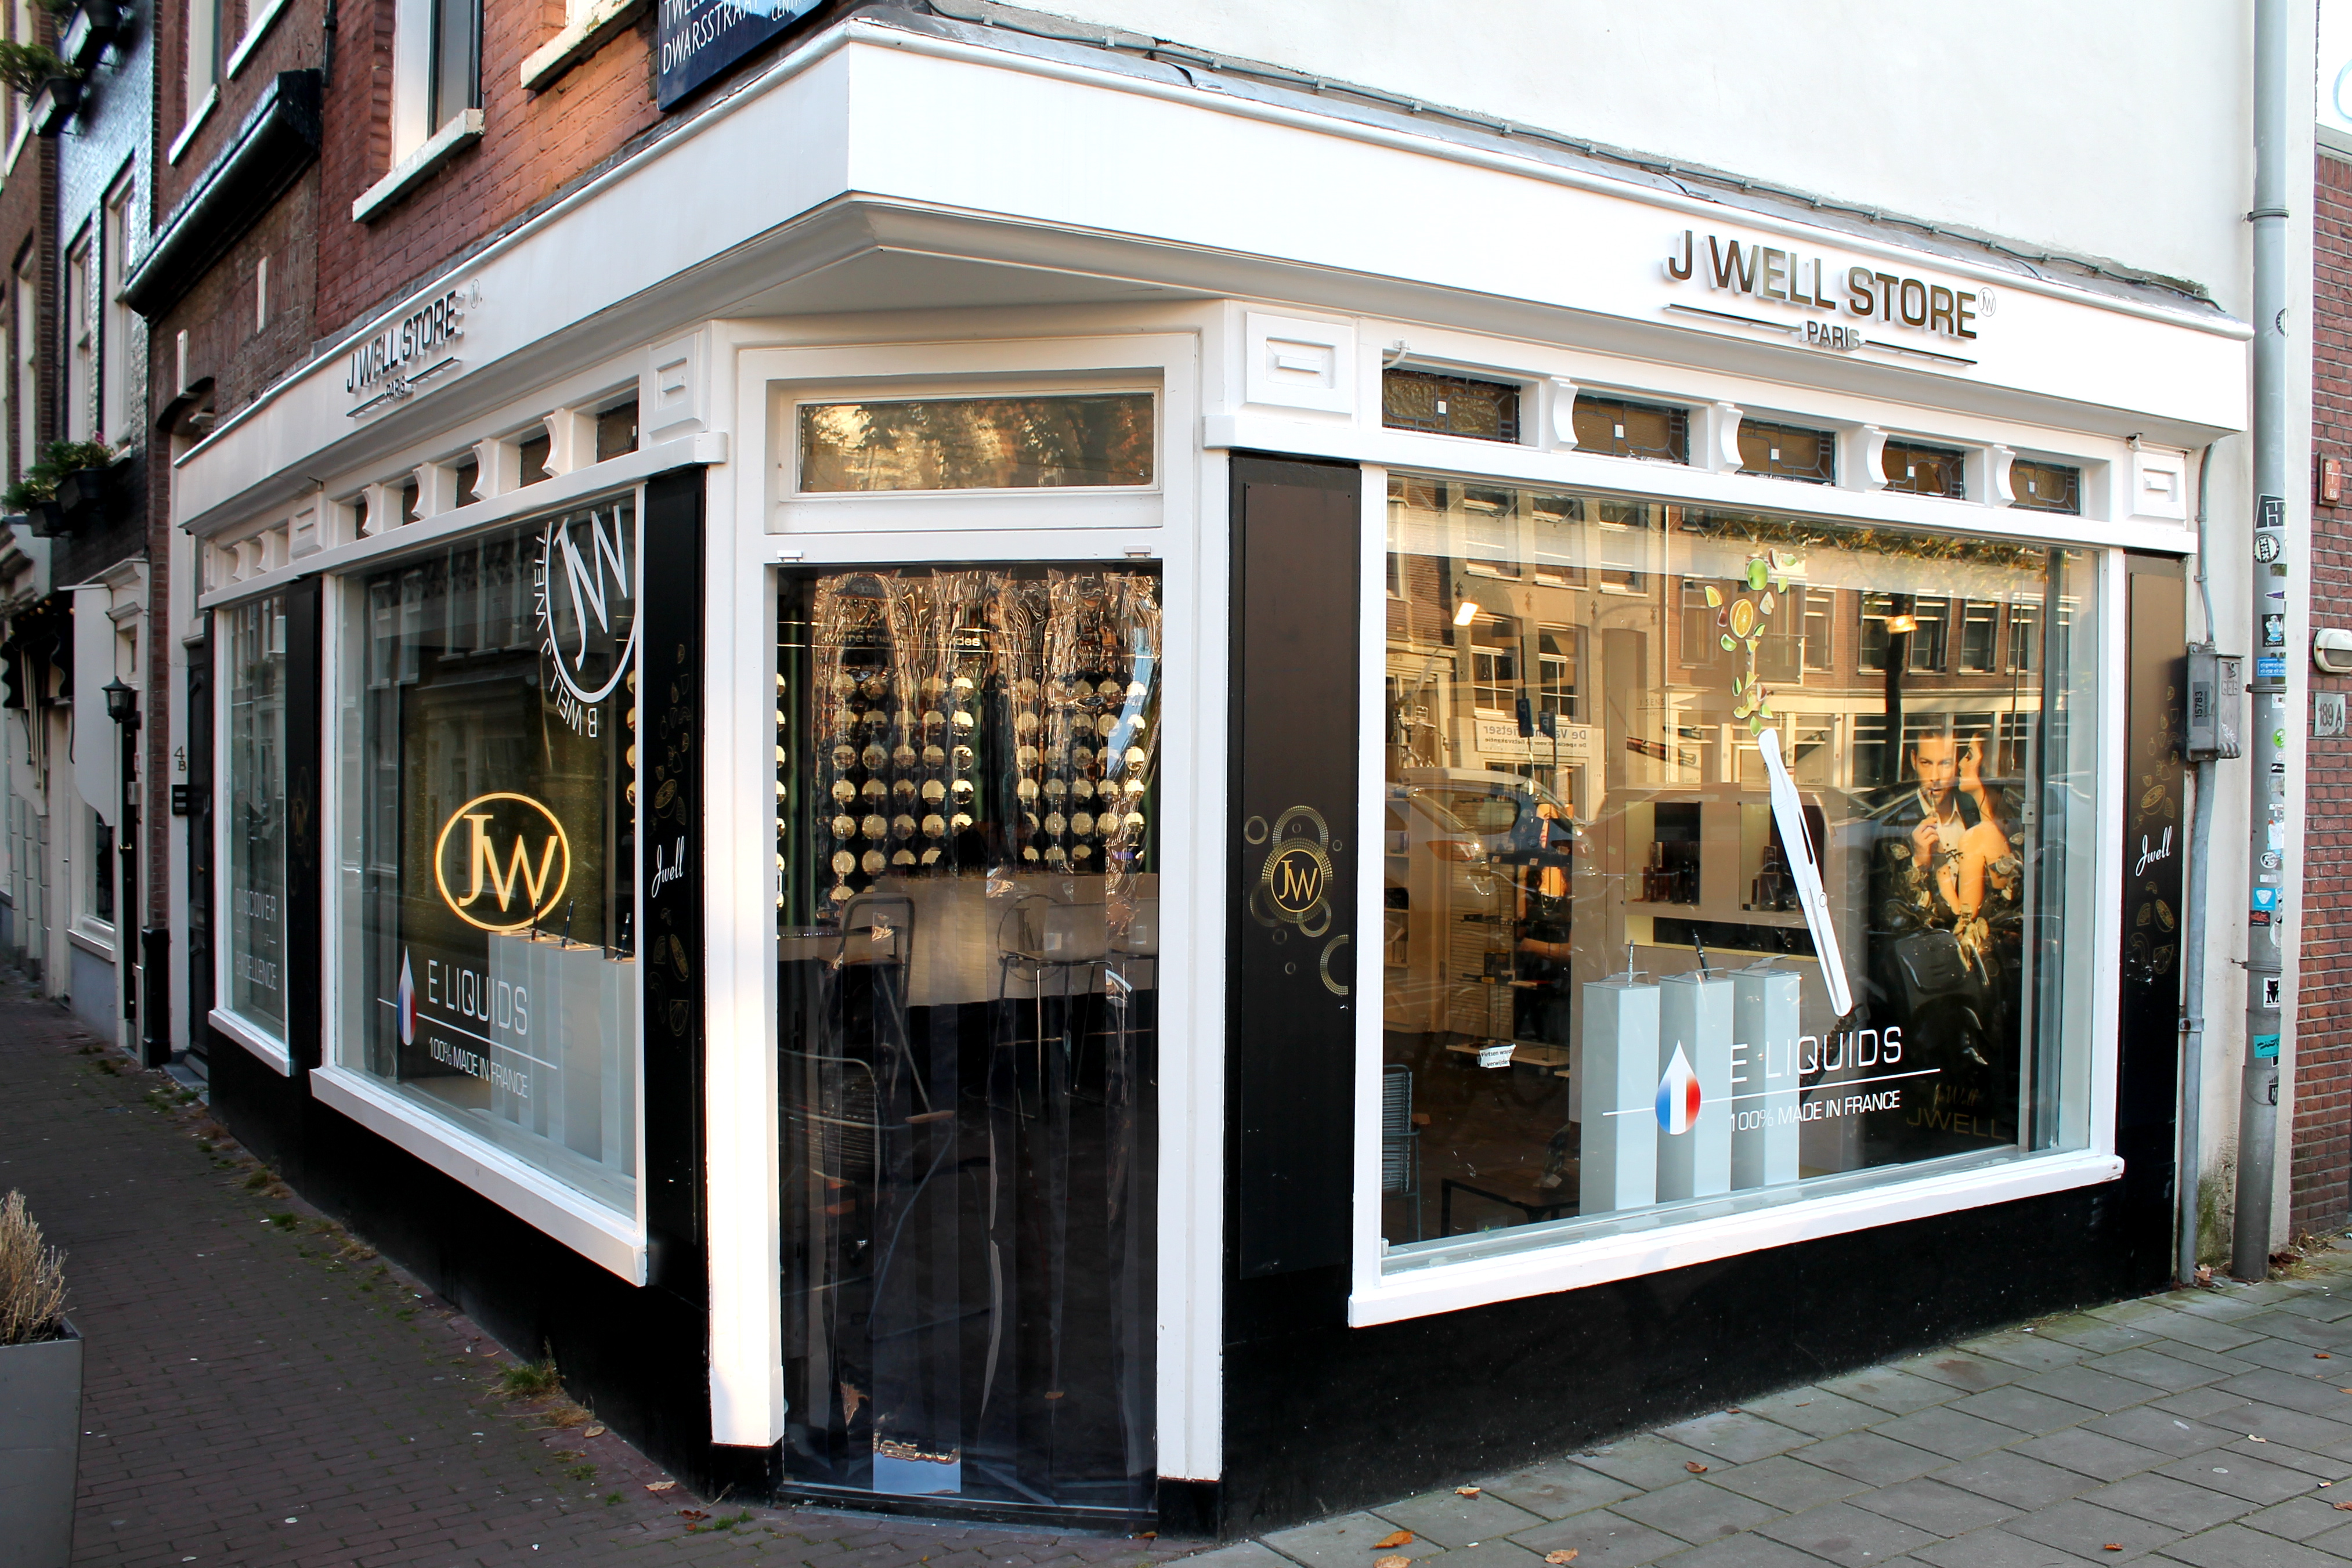 Store Amsterdam Your Electronic Cigarette Store In Amsterdam - J Well